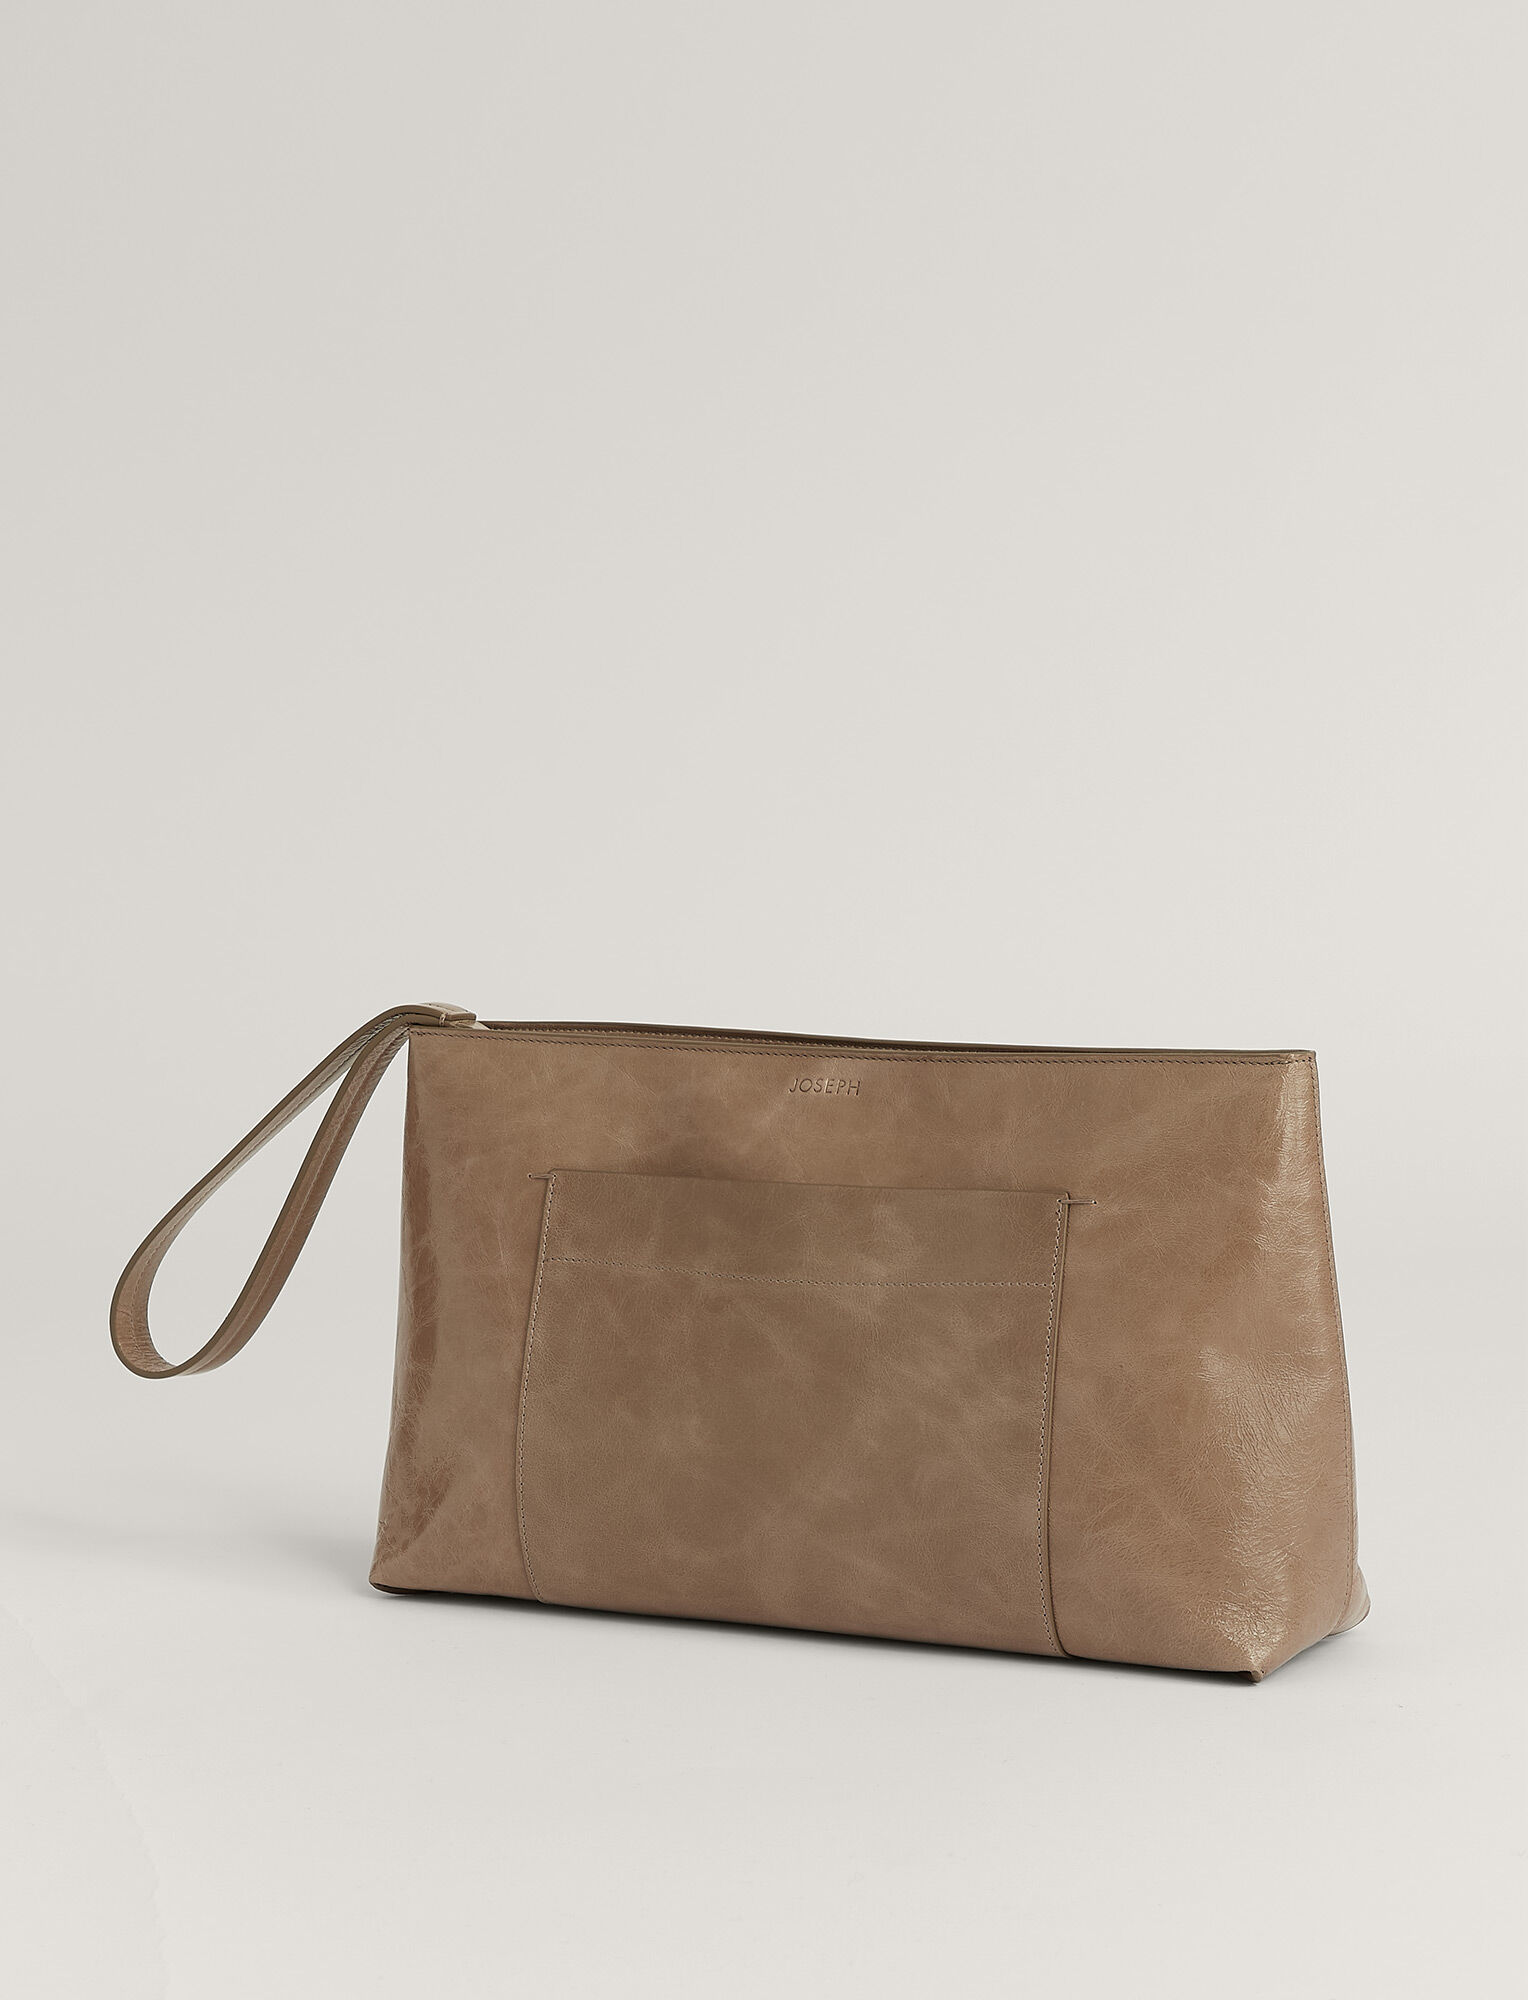 Joseph, Westbourne Clutch Leather Bag, in TAUPE